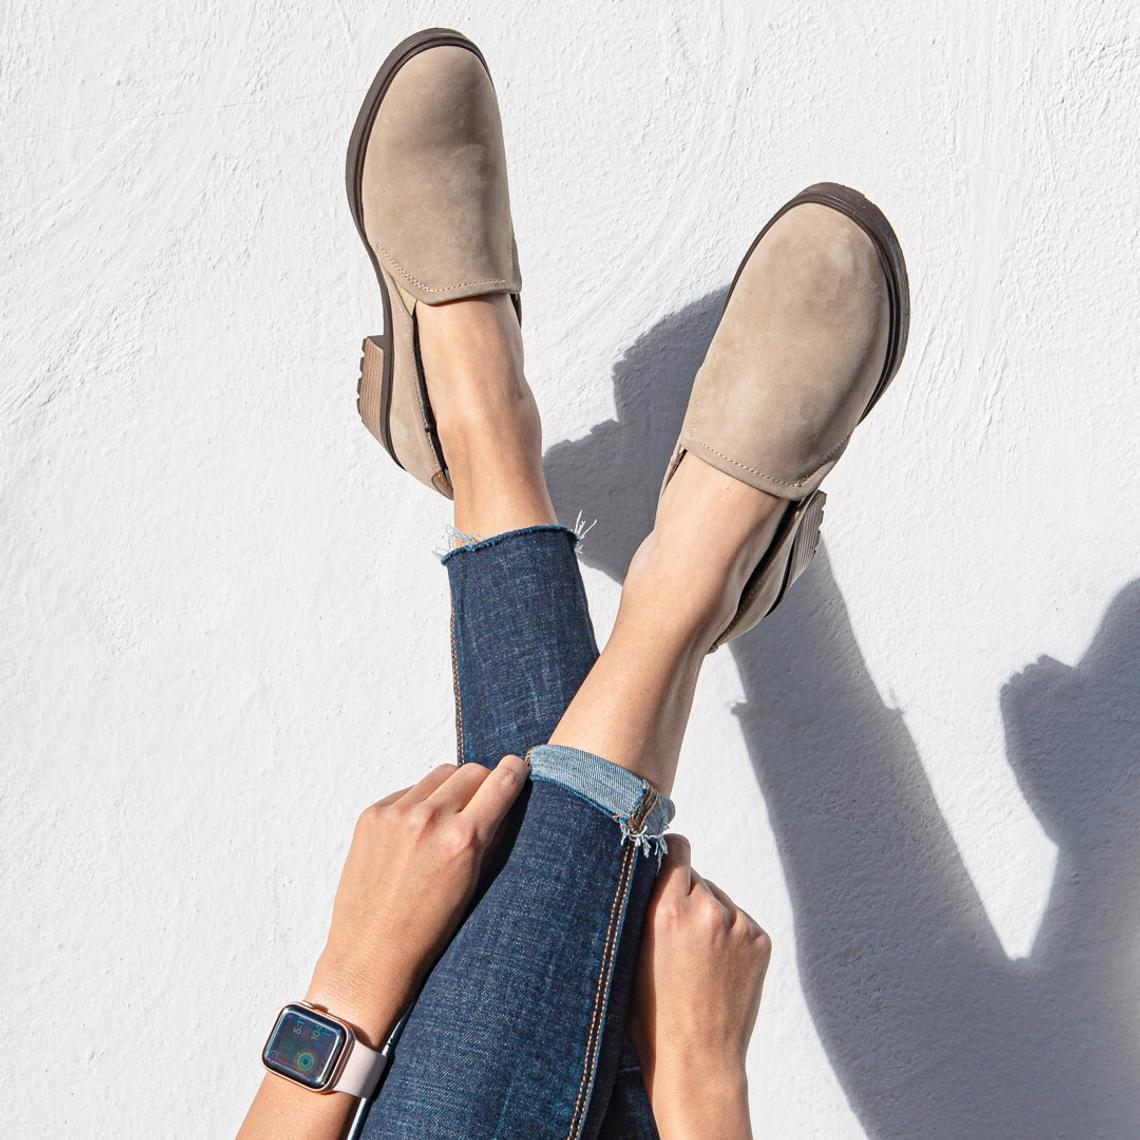 suede loafers, chunky loafers, low heels, loafers women, loafers, block heels, spring trends, suede leather shoes, suede slippers